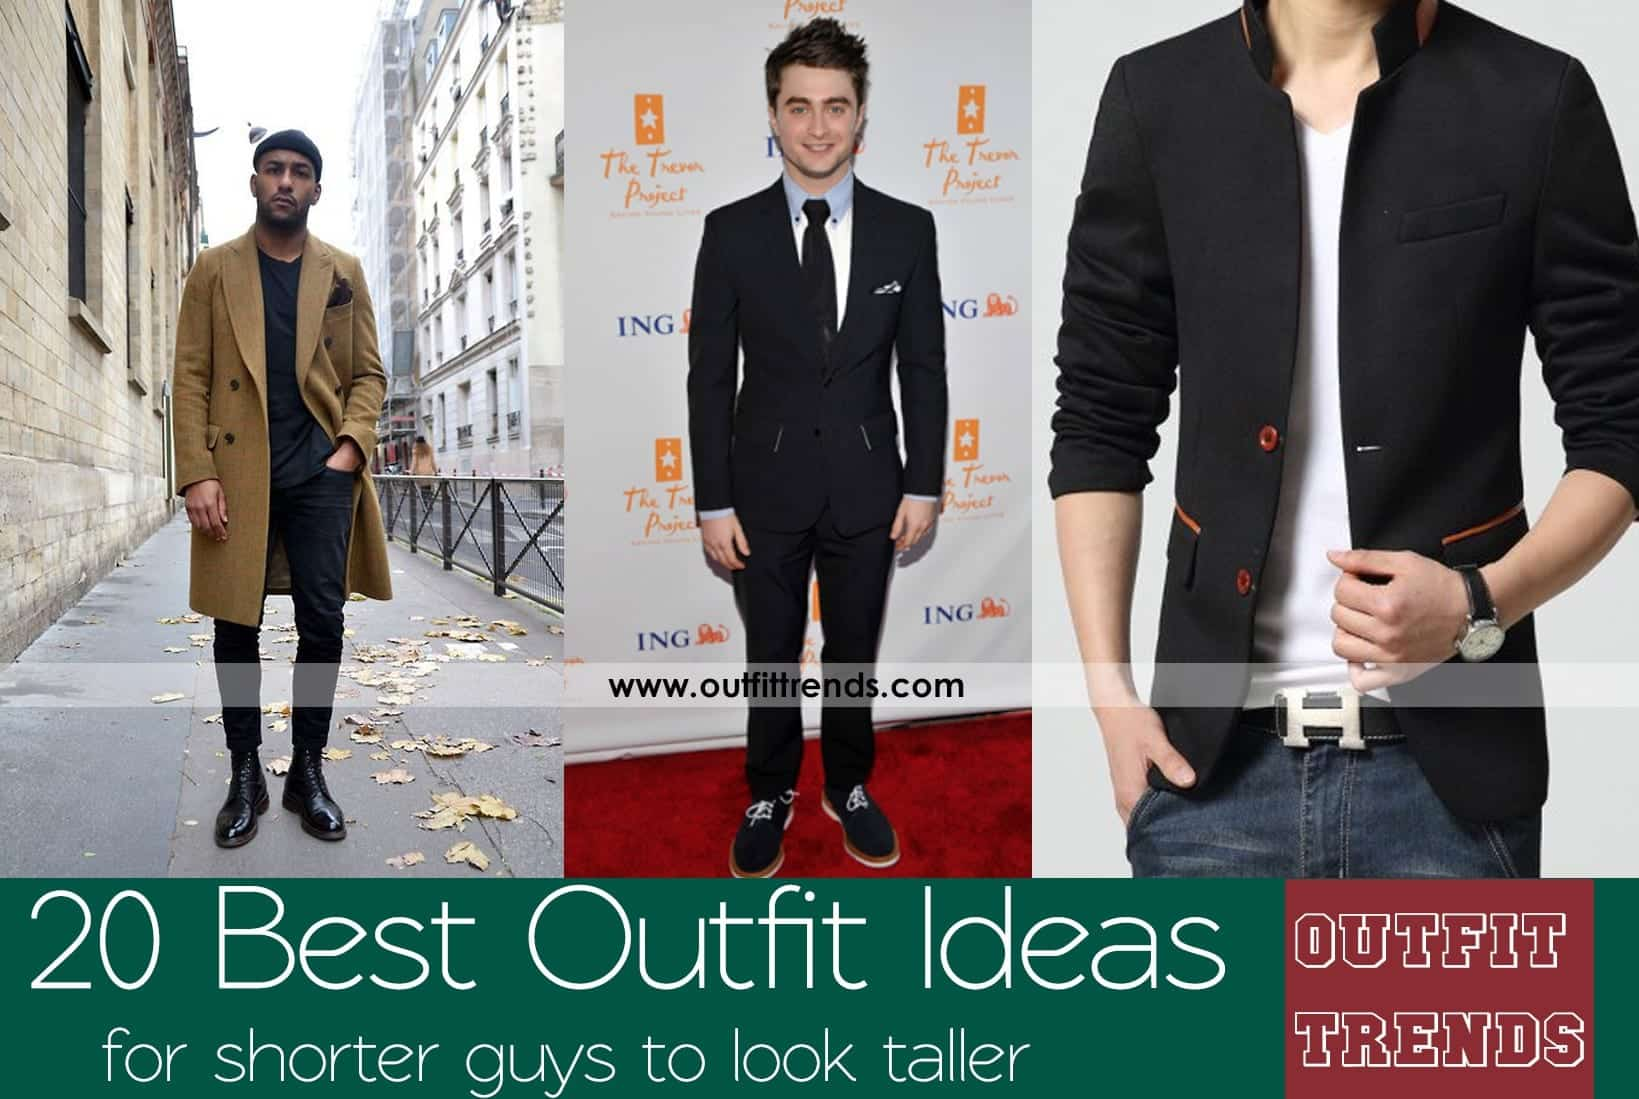 Men's Fashion Tips And Style Guide For 2018 FashionBeans 23